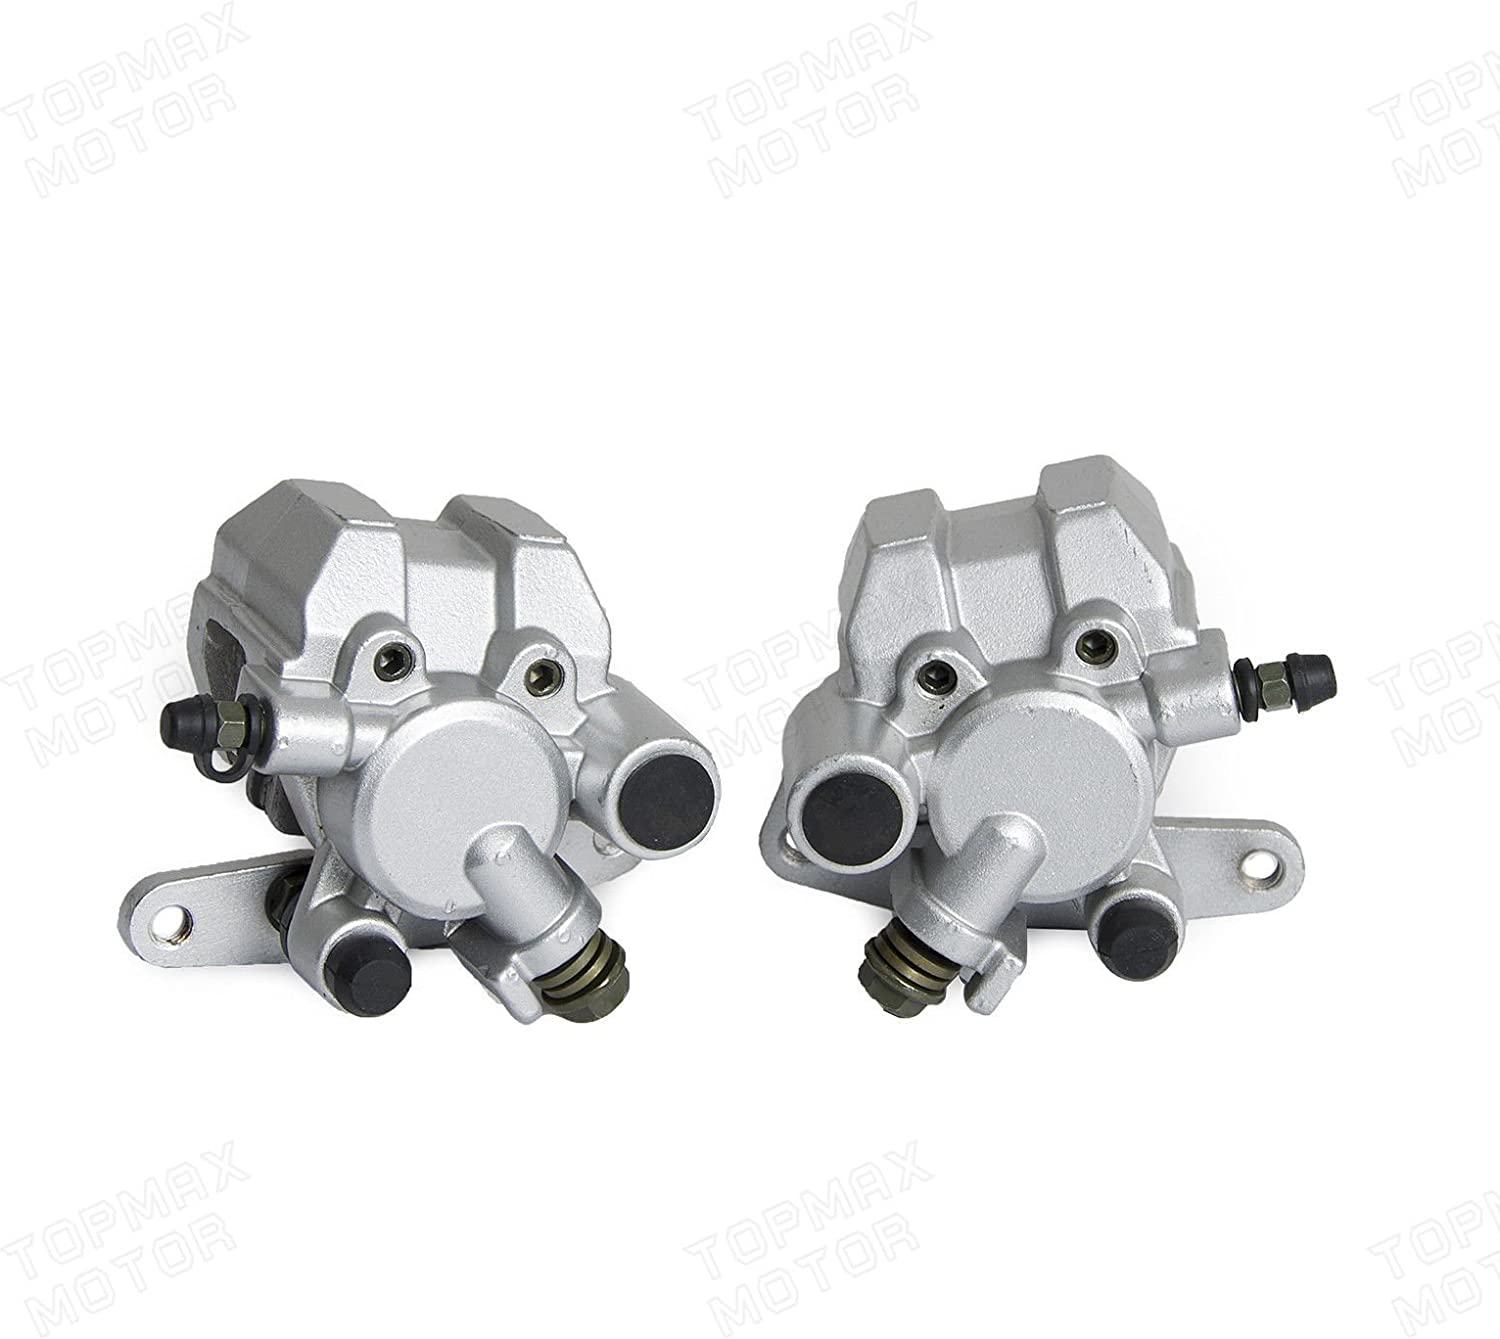 NEW LEFT RIGHT FRONT BRAKE CALIPERS shopping TRX 400X FOR Limited time sale HONDA TRX-400X